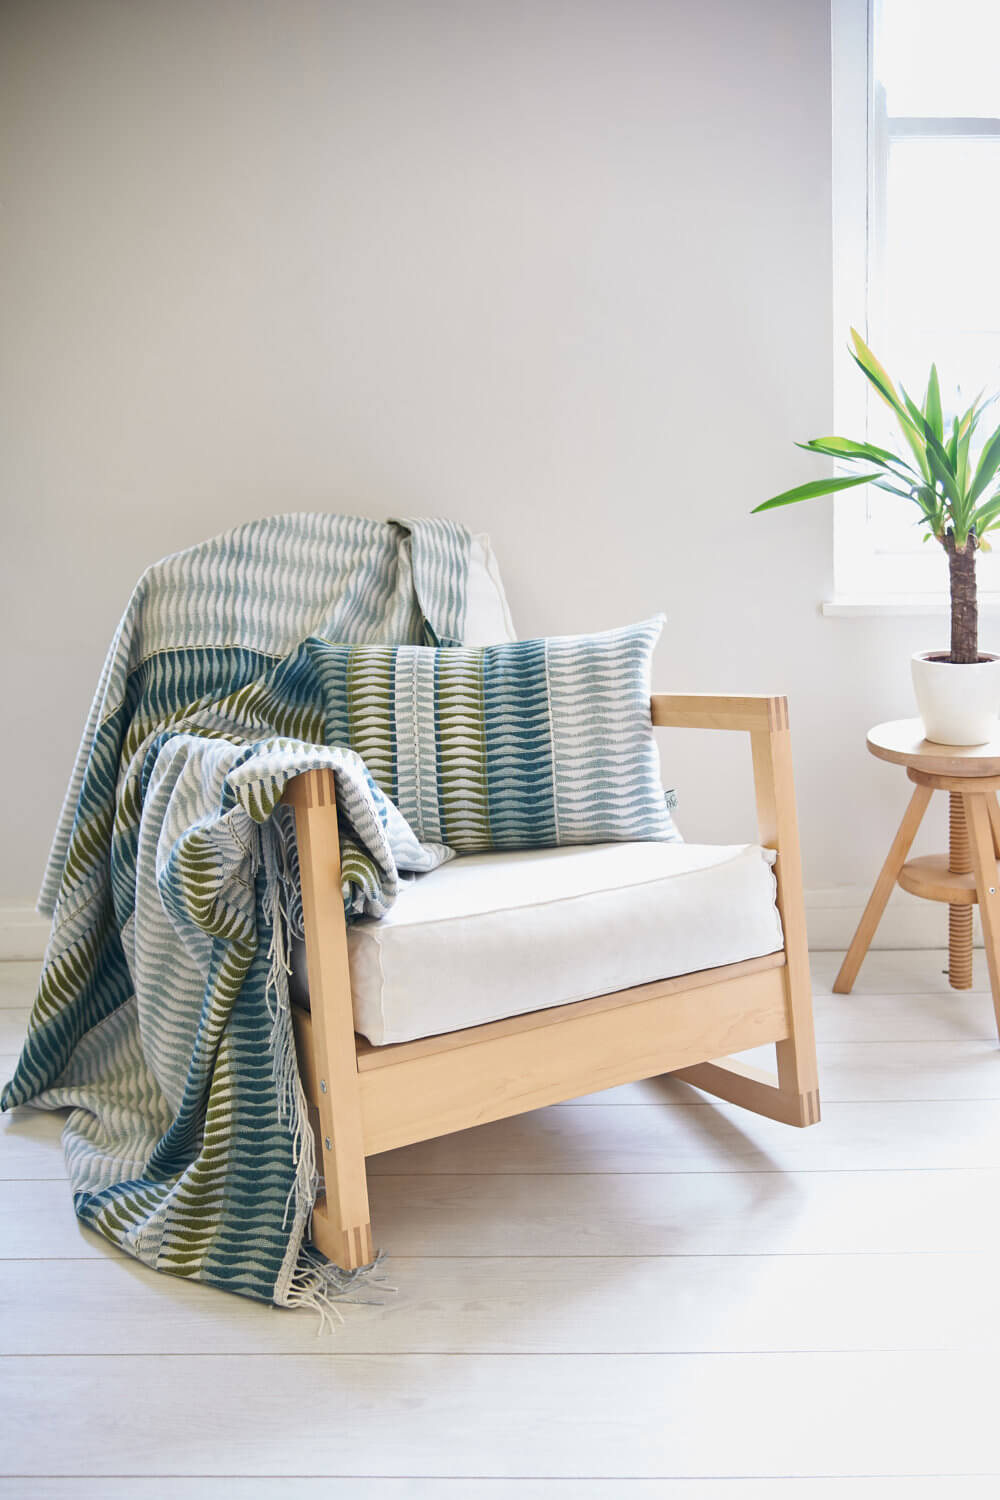 Contemporary setting for this throw by designer Camilla Thomas Textiles